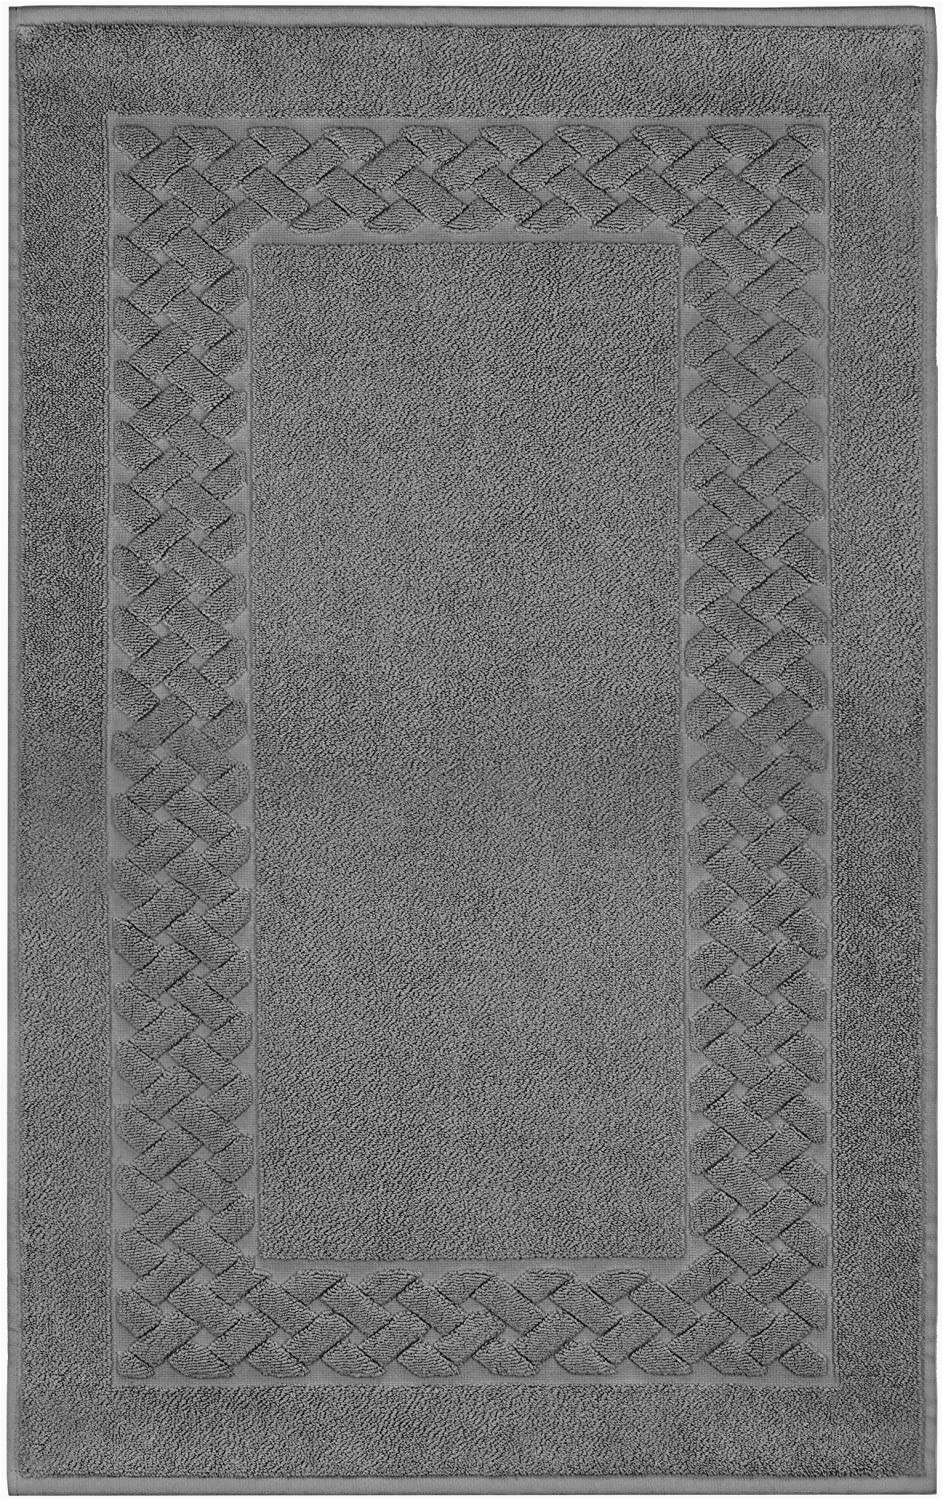 Terry Cloth Bath Rugs Lashuma Bath Mat Bath Mat Shower Mat Cotton Terry towel Royal 50 X 80 Cm Cotton Slate Grey